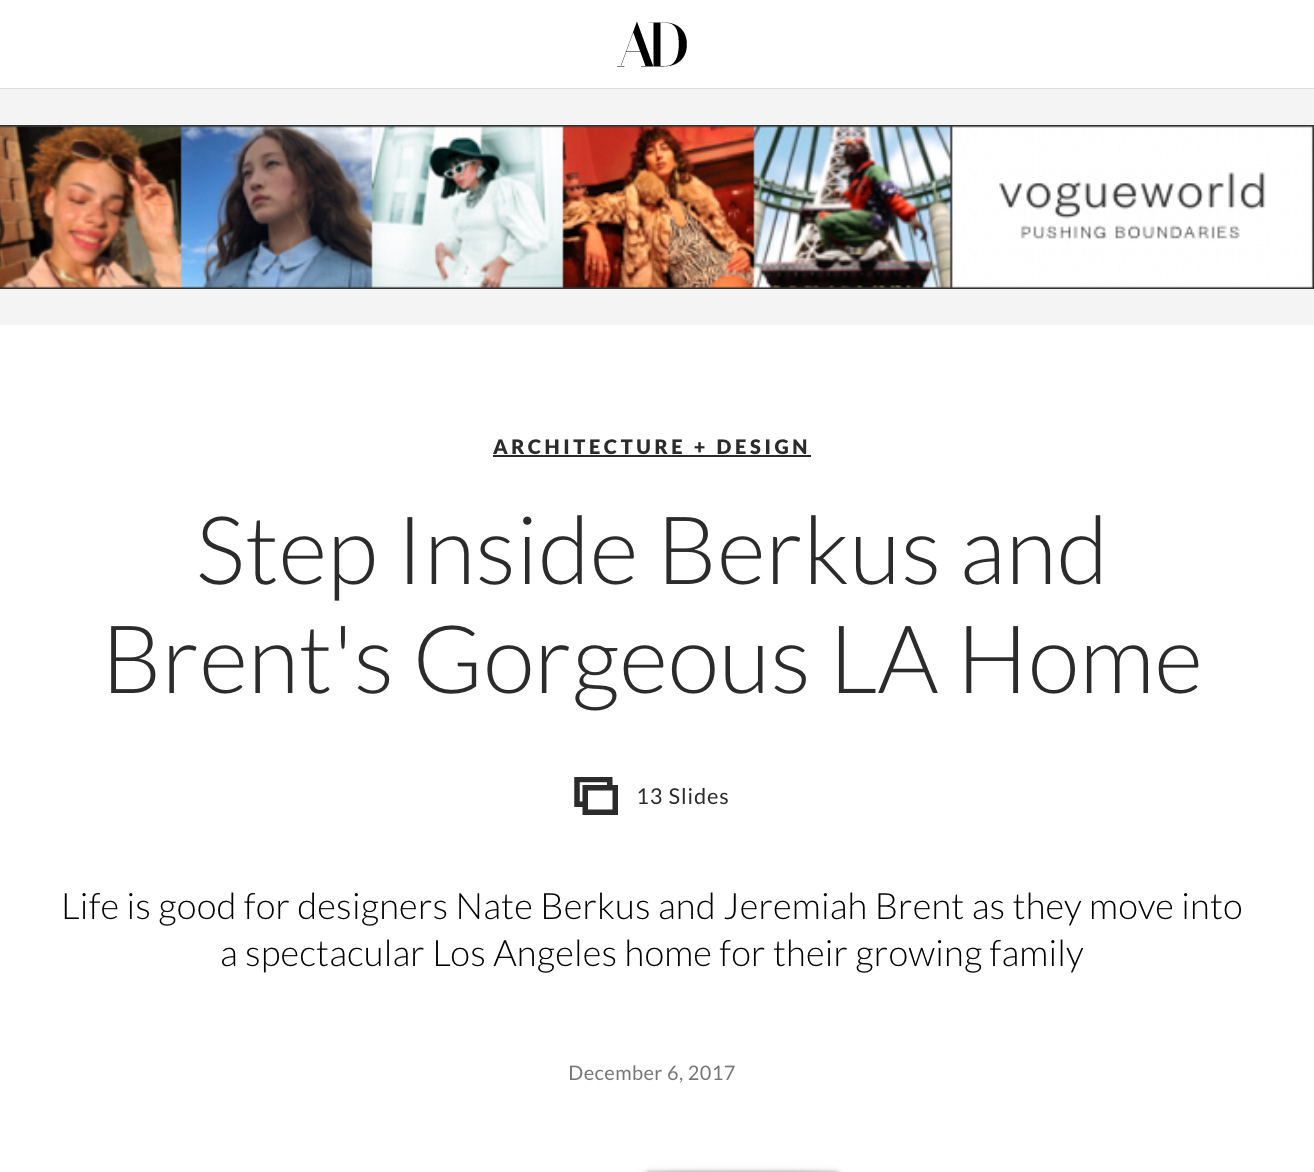 Step Inside Berkus and Brent's Gorgeous LA Home